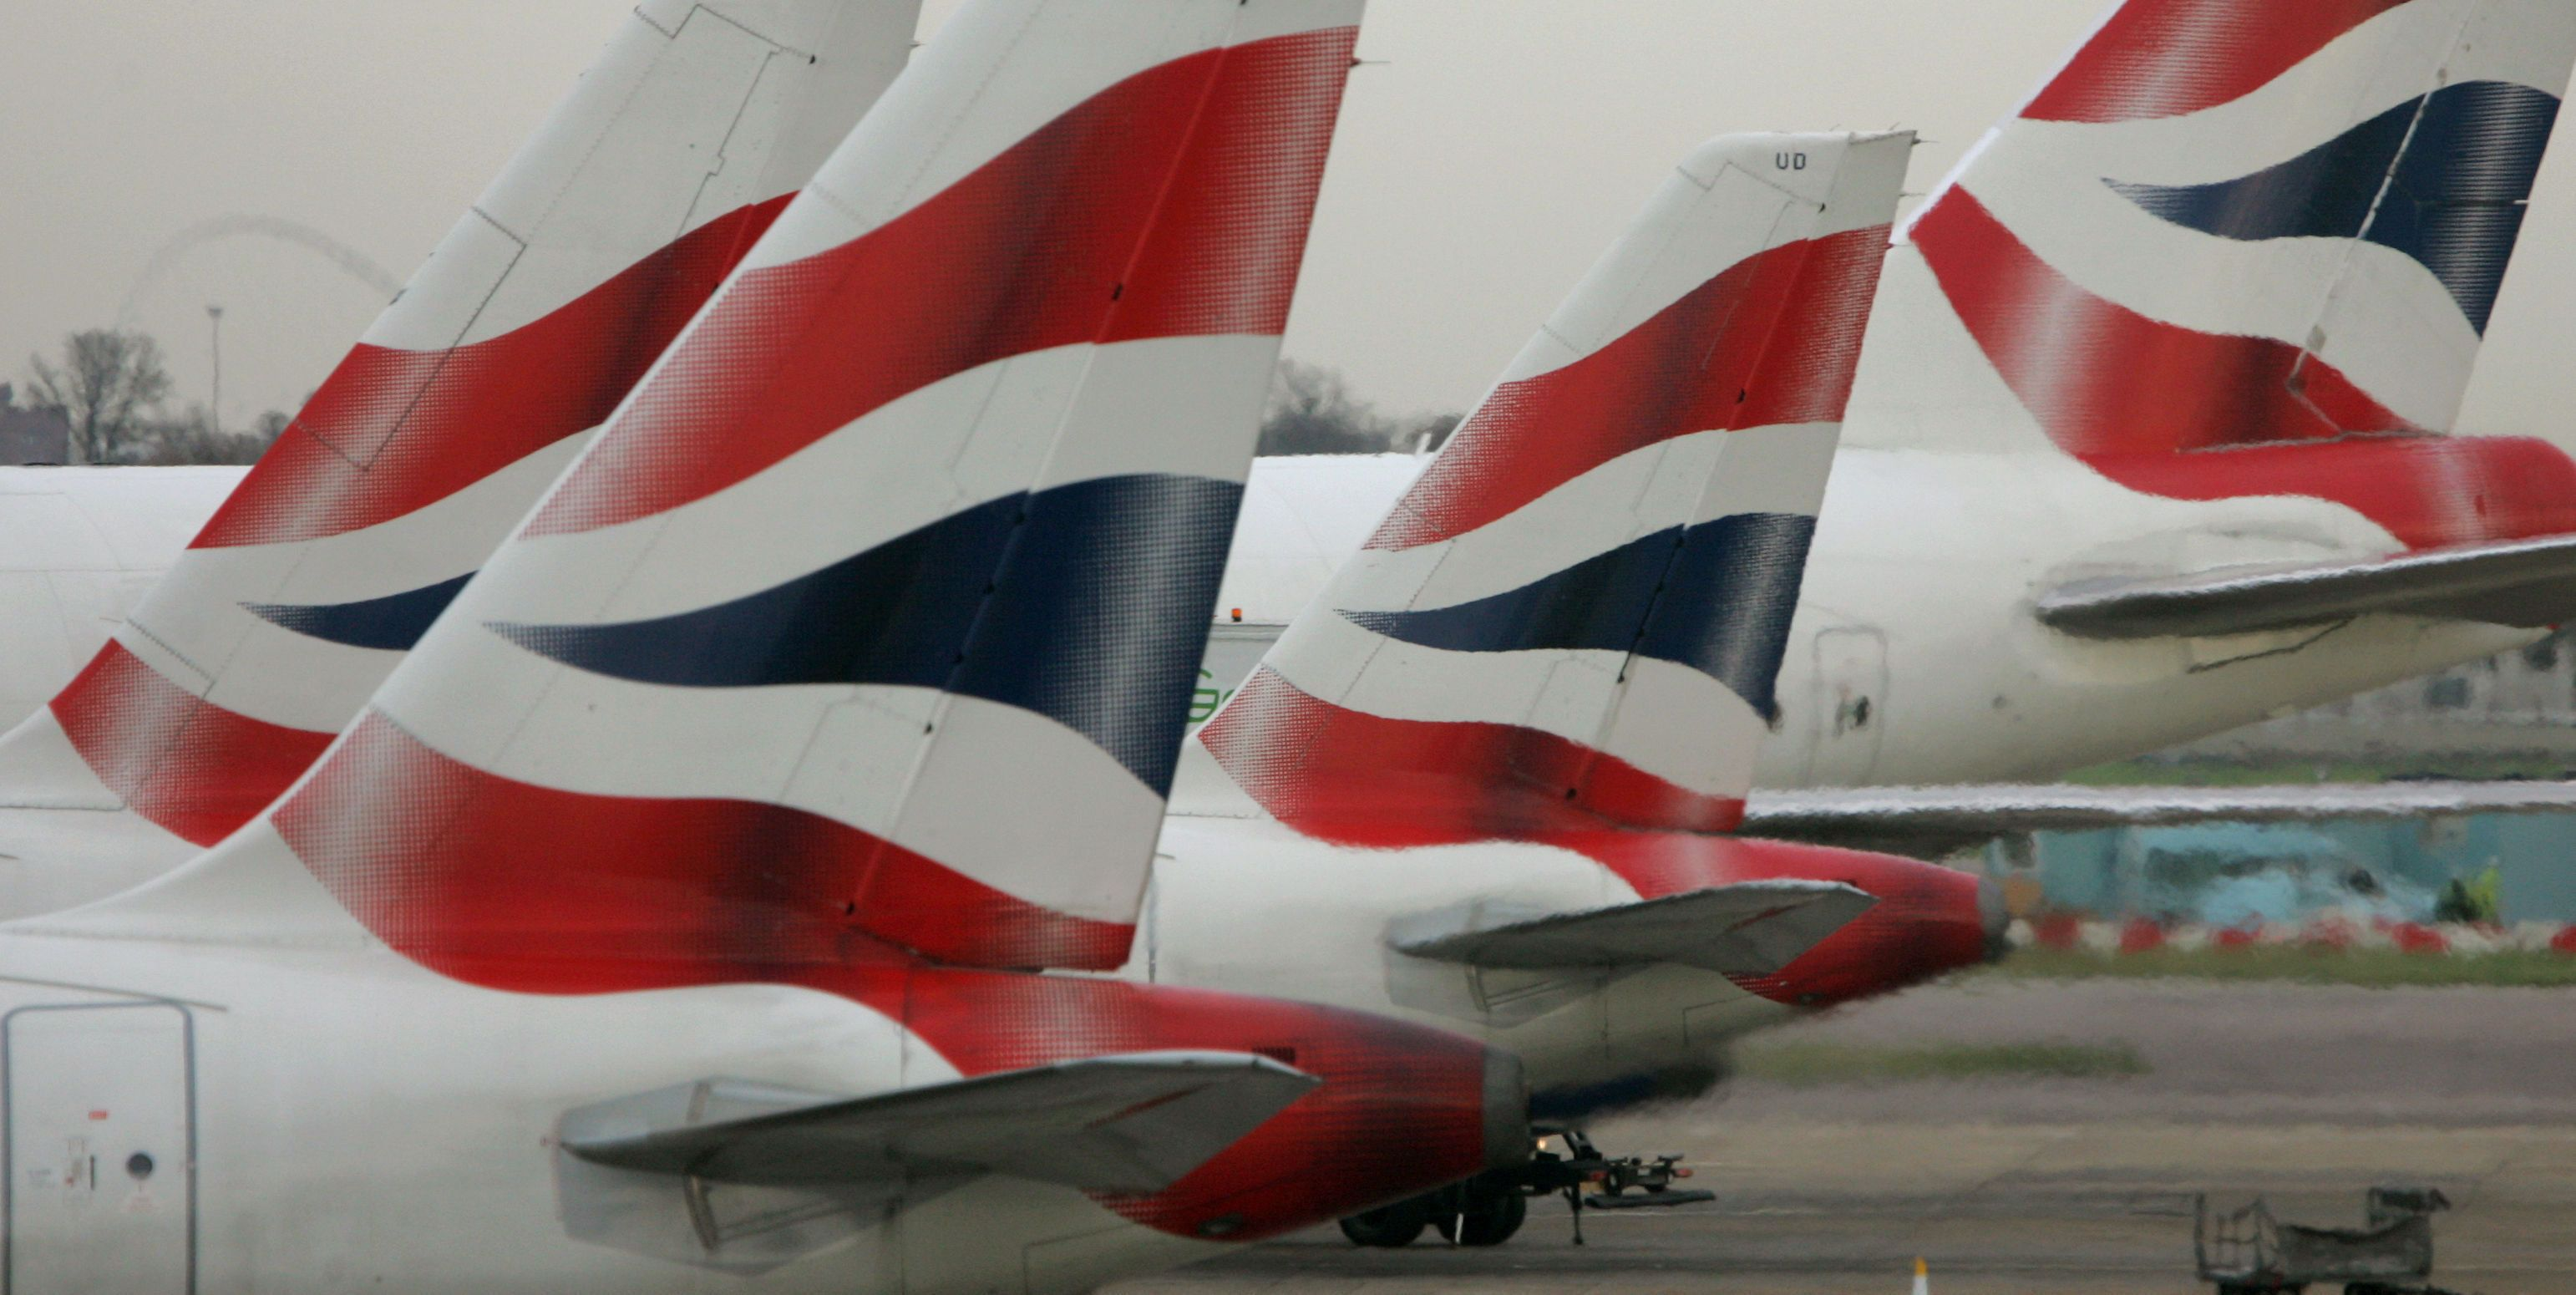 British Airways pilot dragged off plane for being over alcohol limit